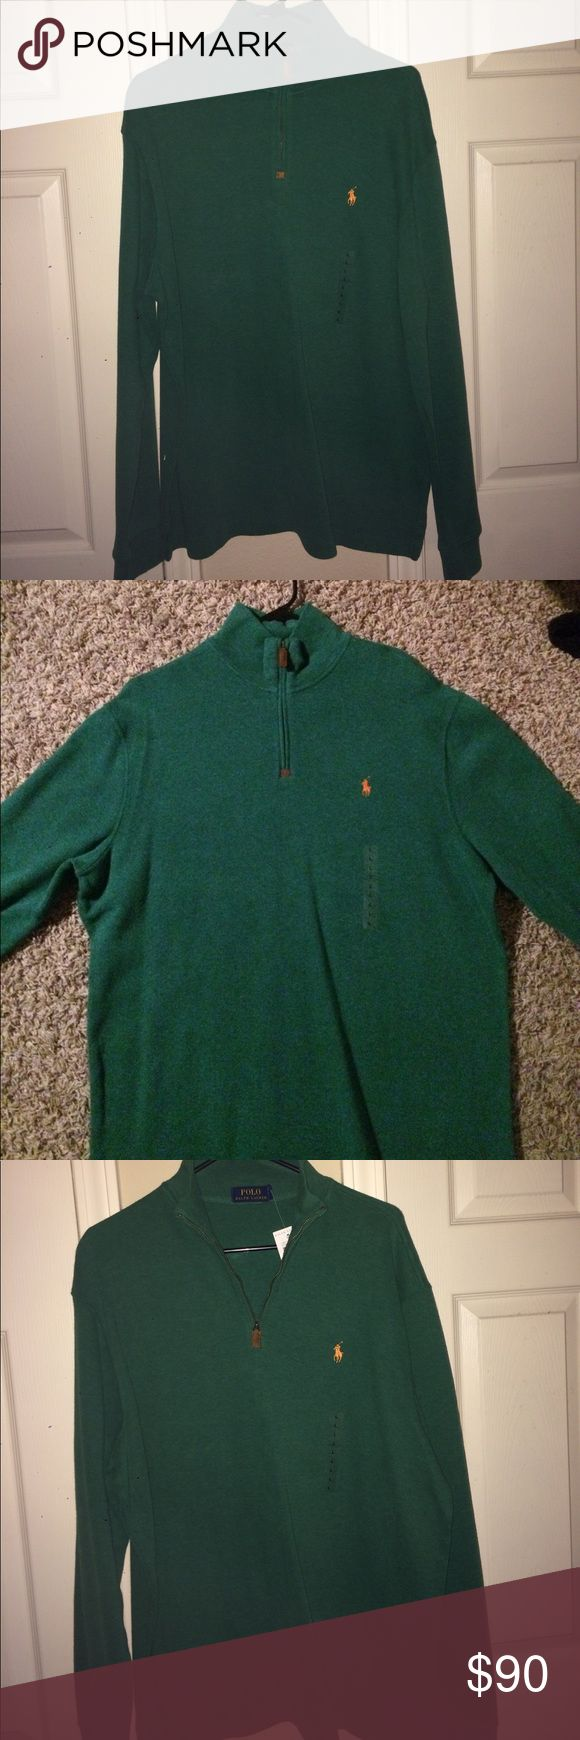 Men's Ralph Lauren Polo pullover New with tags. Large, green w/orange horse pull over. Perfect condition! Give me an offer! Polo by Ralph Lauren Sweaters Zip Up